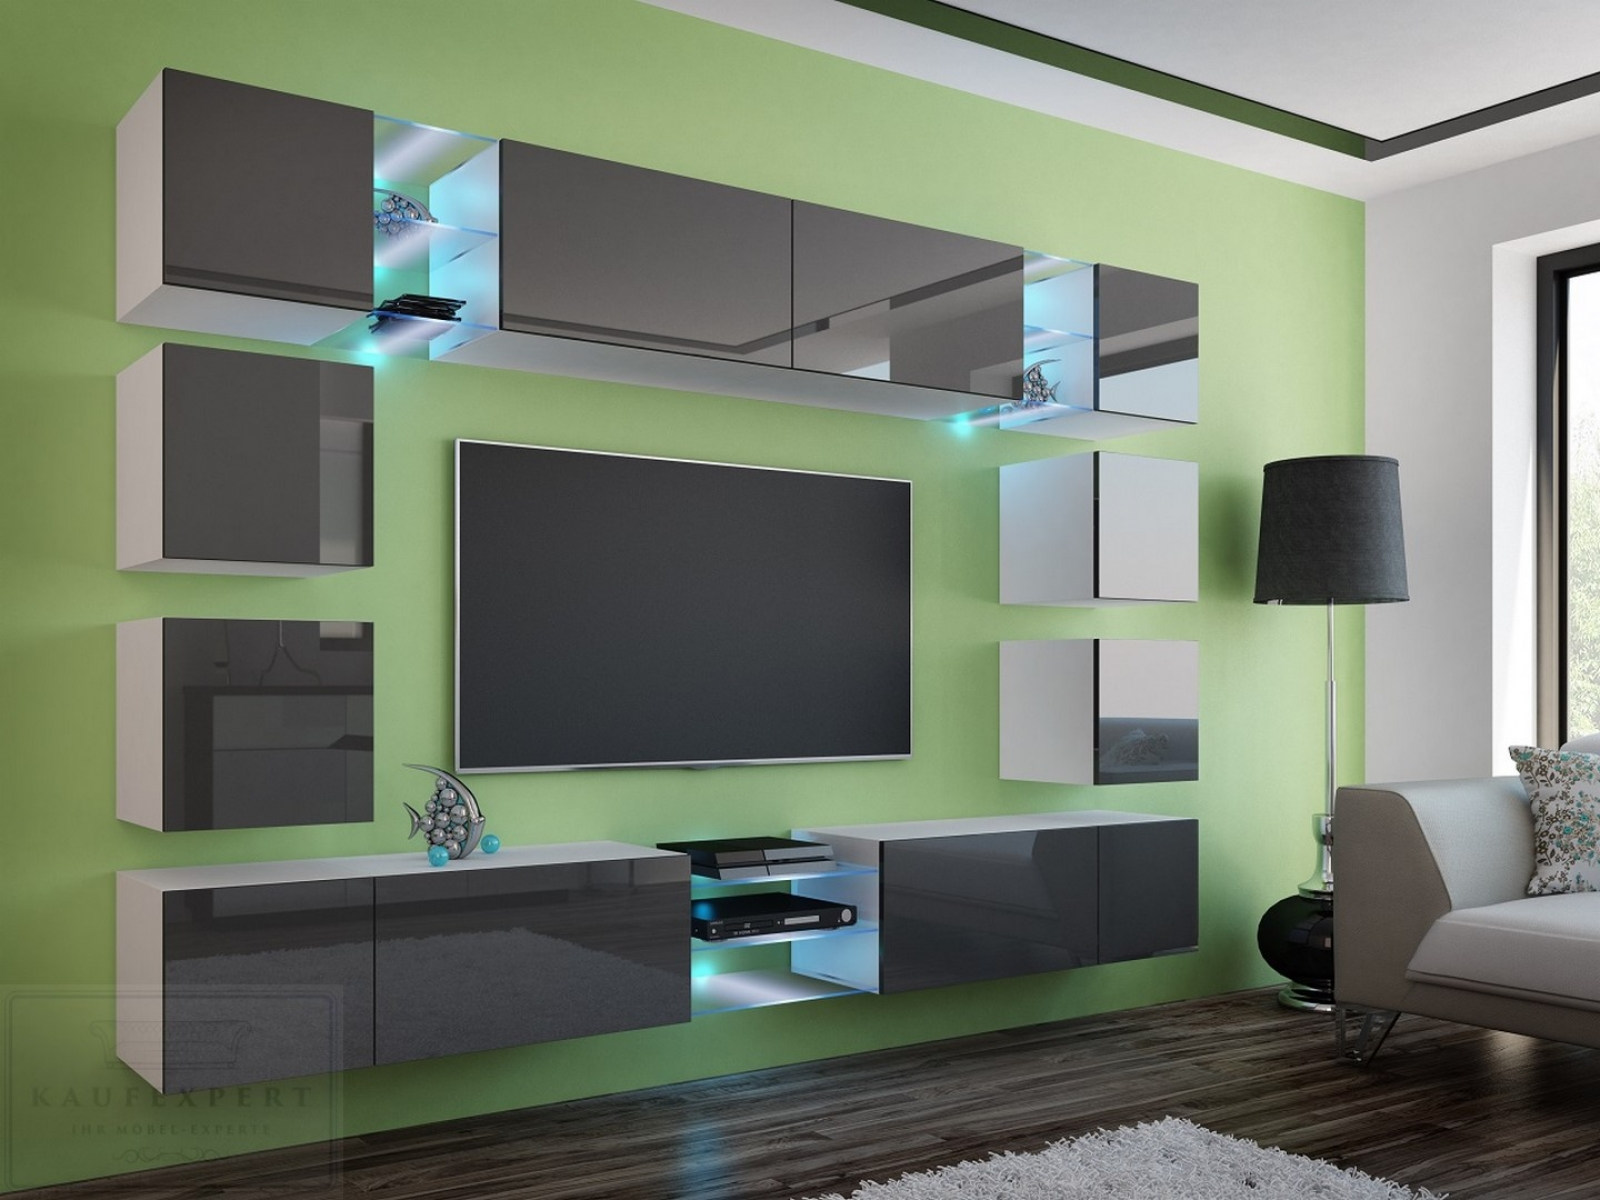 kaufexpert wohnwand edge grau hochglanz wei mediawand medienwand design modern led. Black Bedroom Furniture Sets. Home Design Ideas